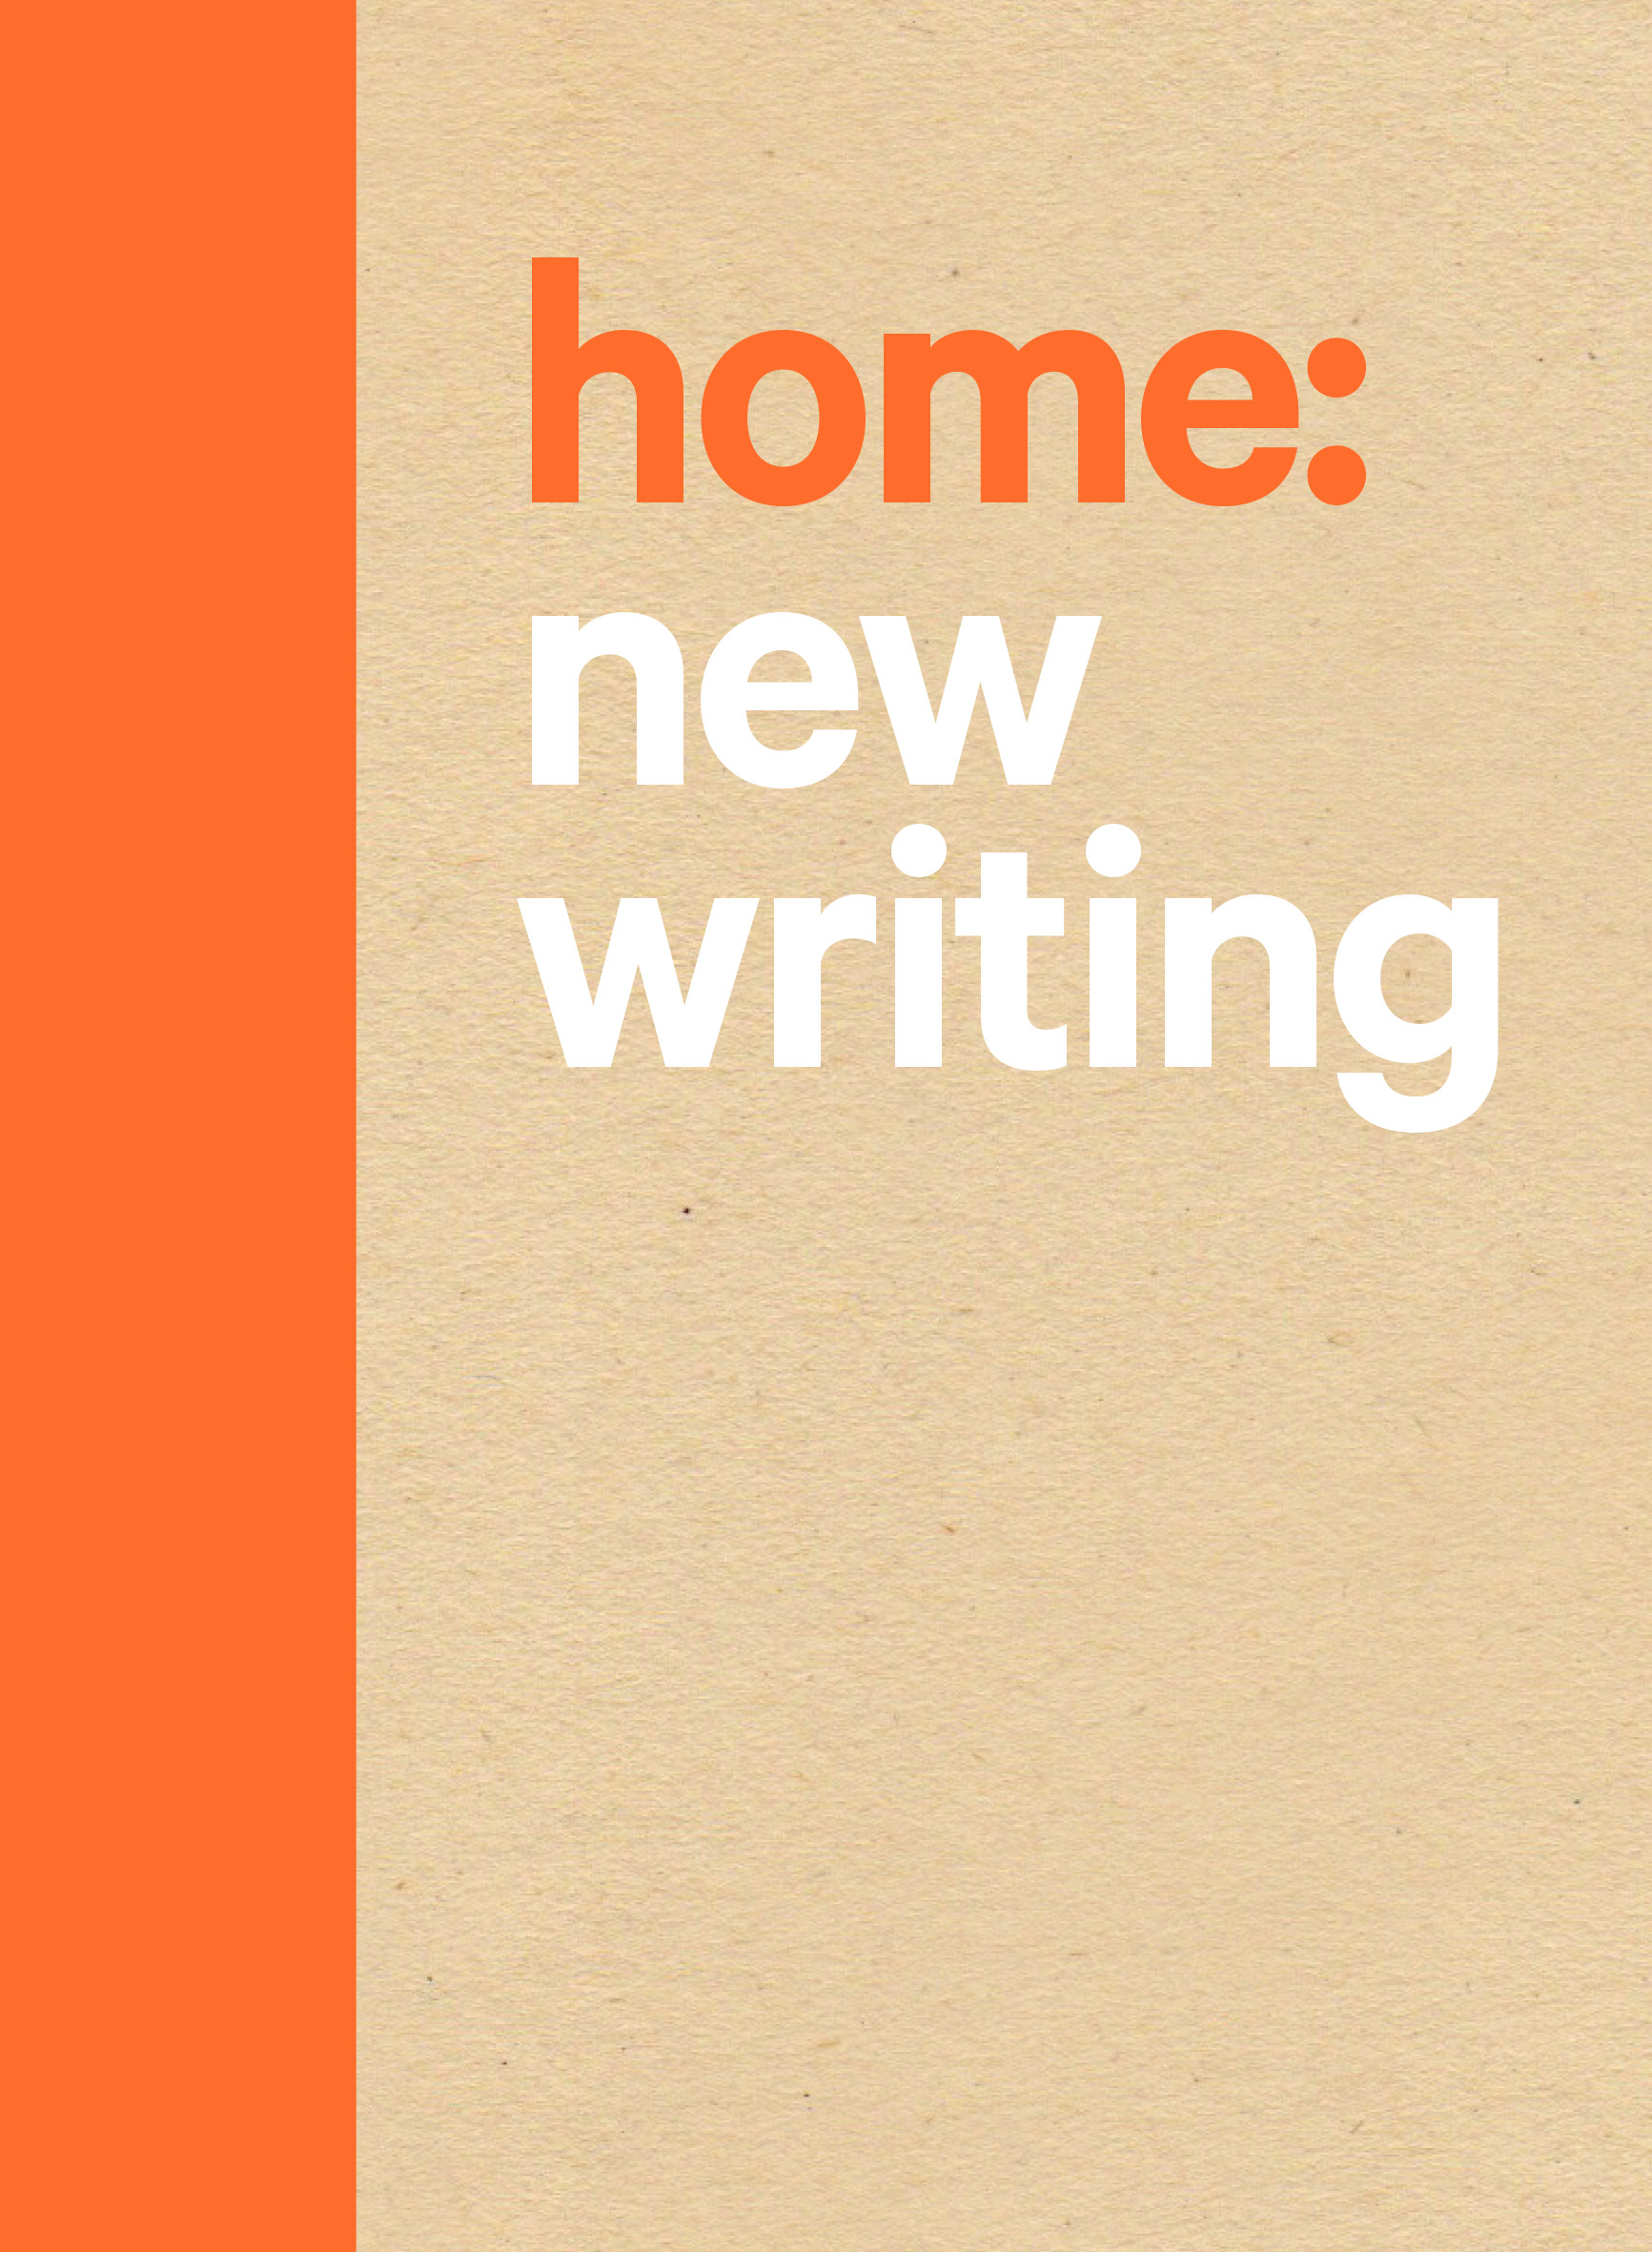 Home: New Writing  edited by Thom Conroy, book review for Stuff.co.nz